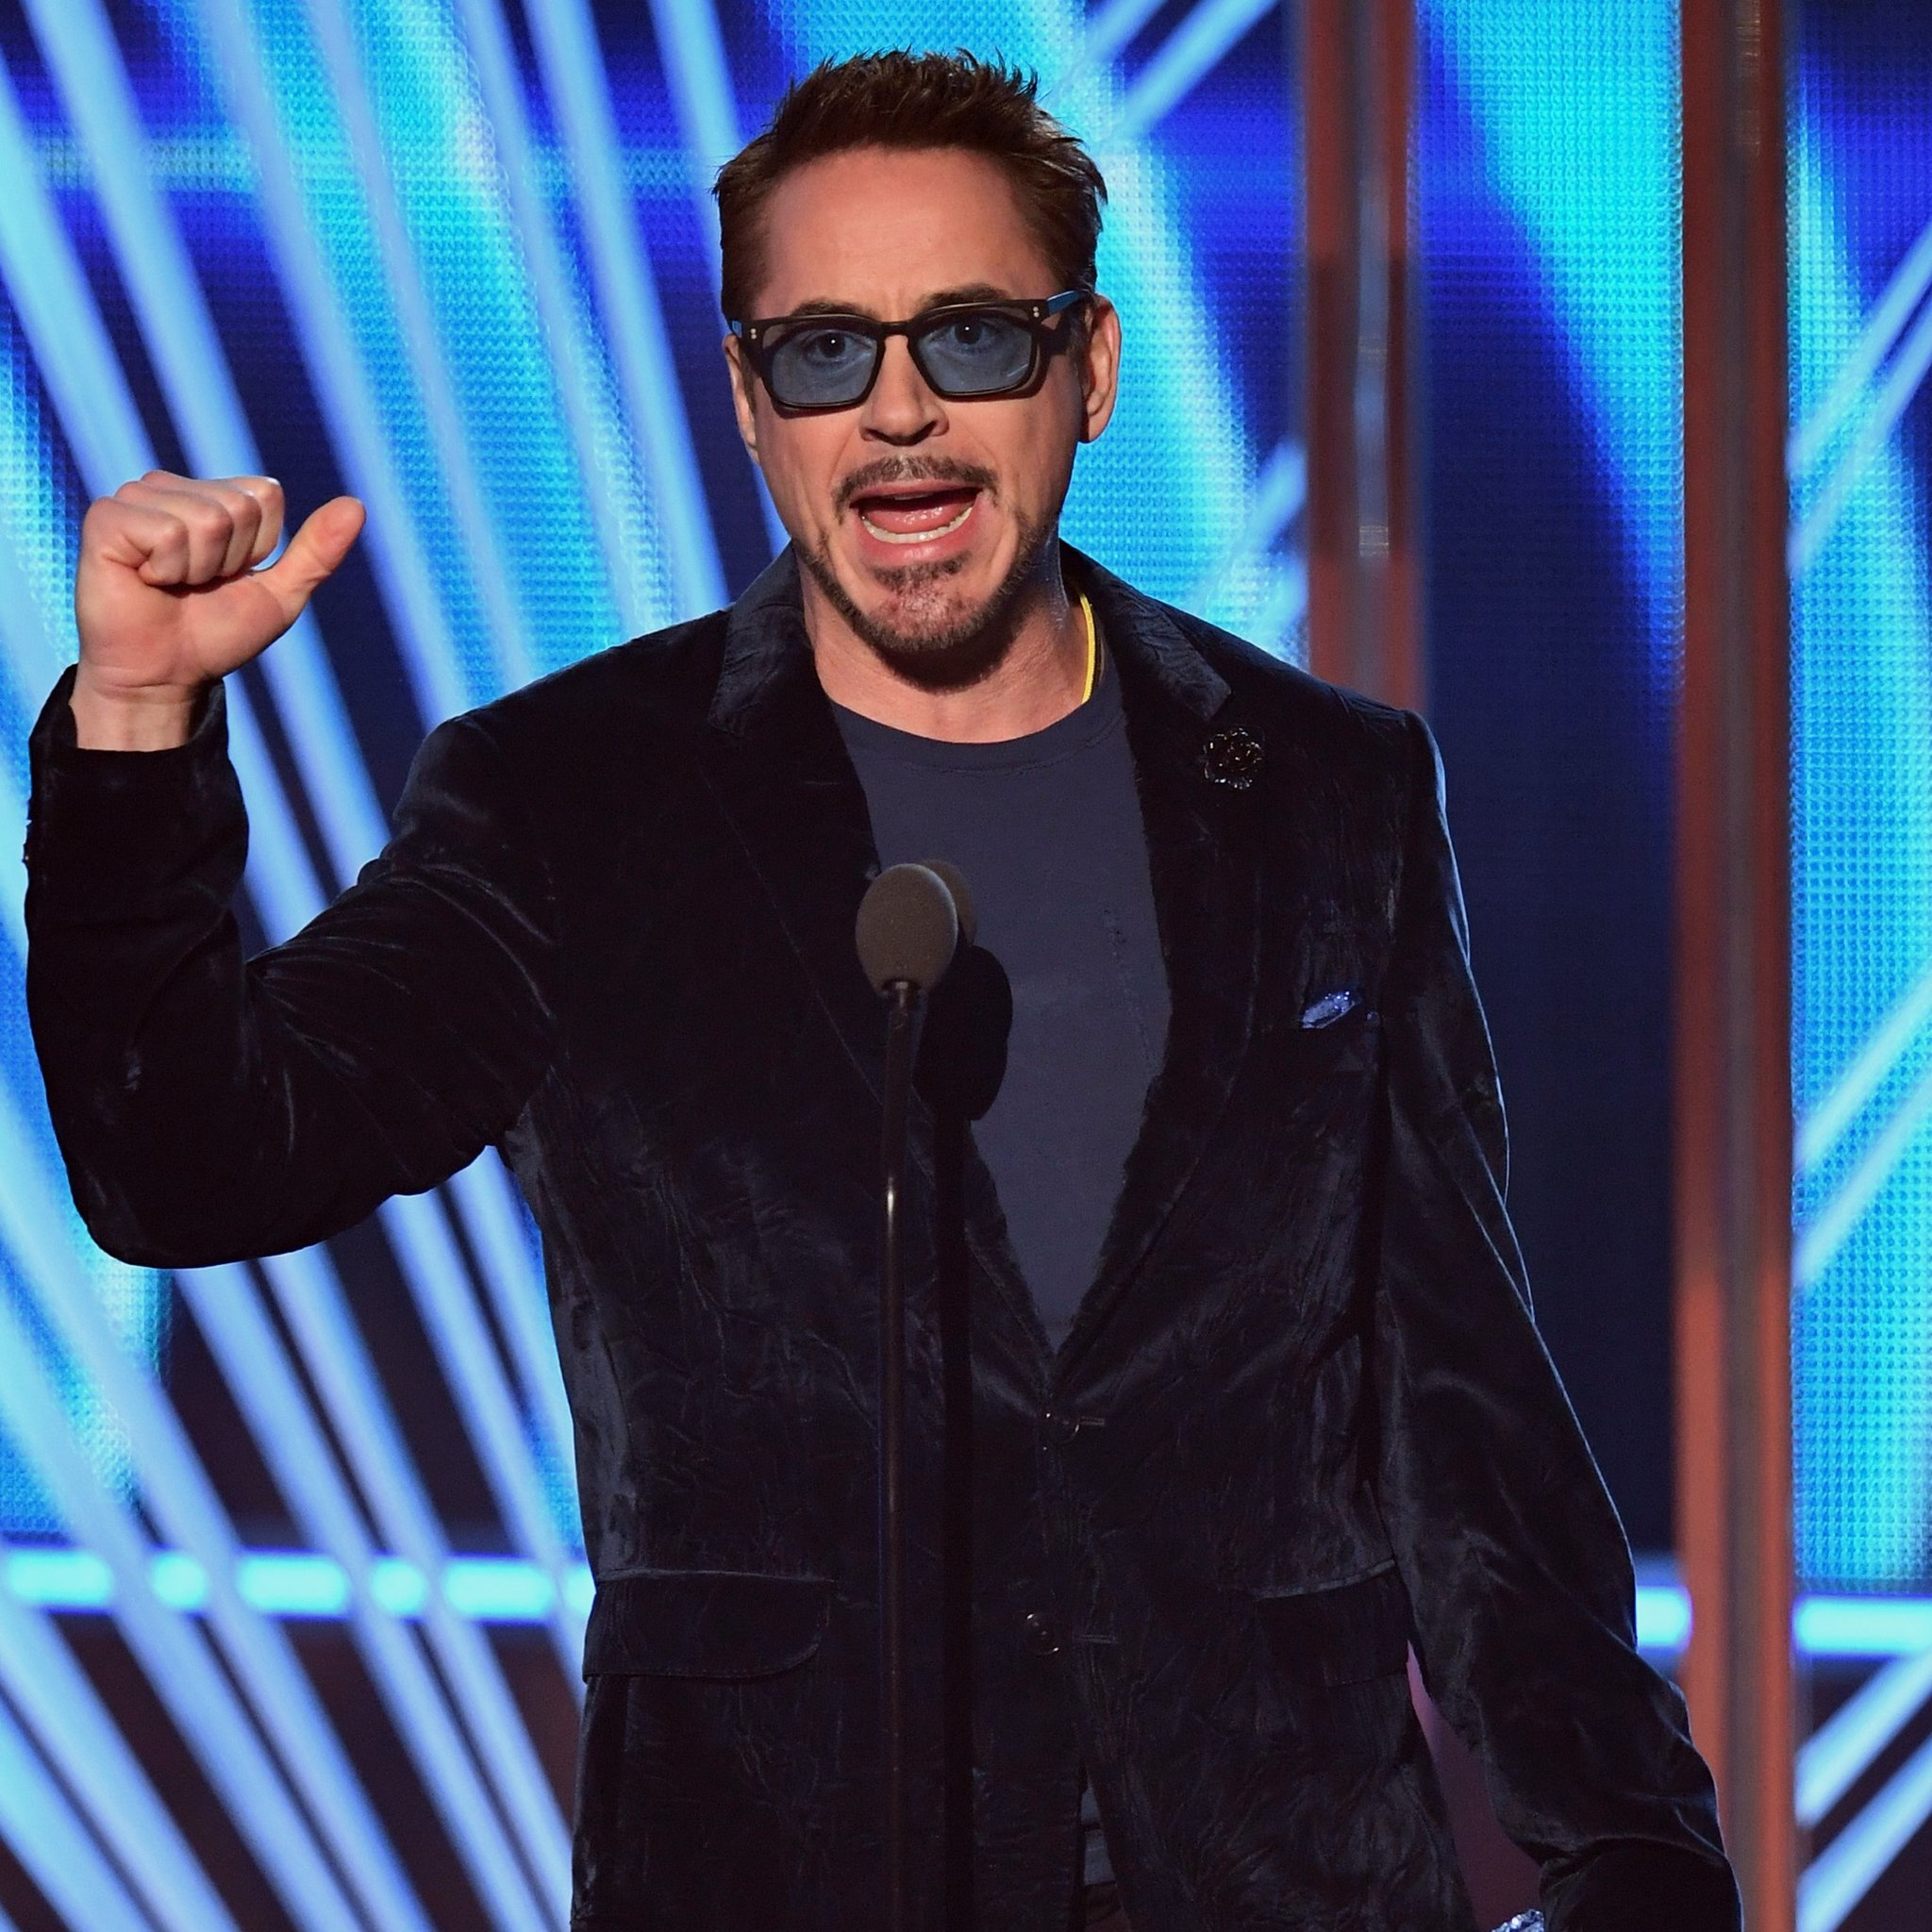 Robert-Downey-hollywood-hairstyles-for-men-celebrity-best-actor-tousled-tops-2017